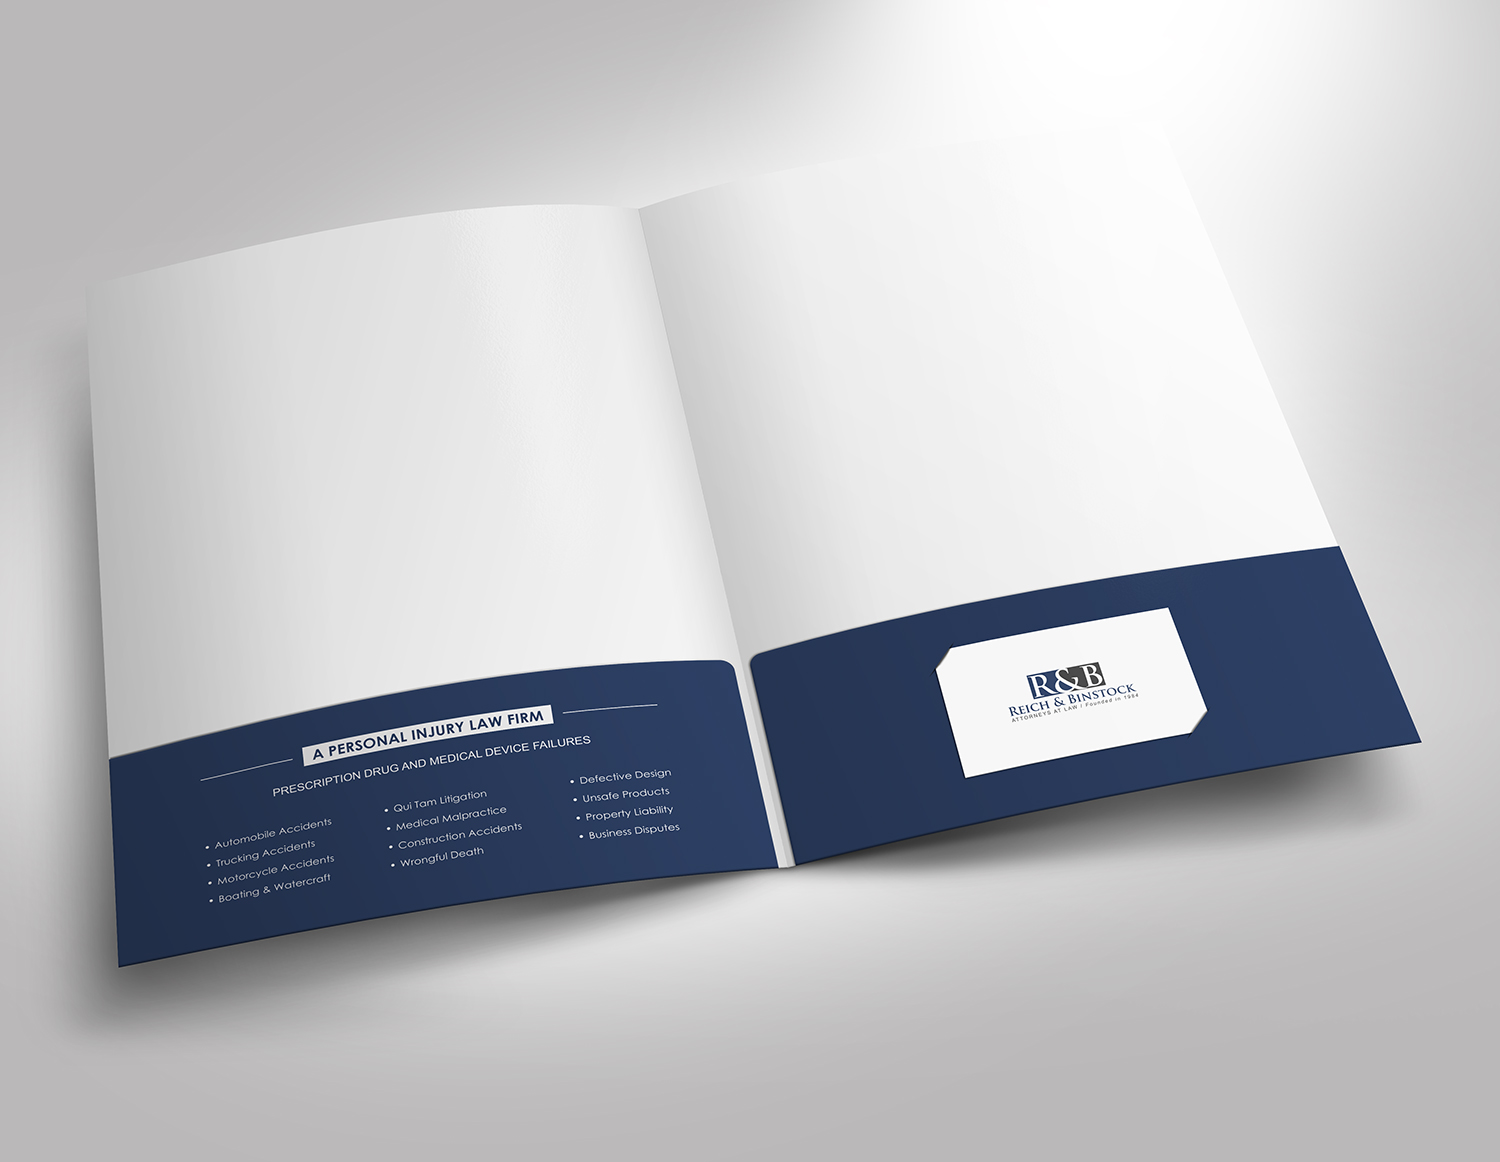 serious professional law firm stationery design for web visibility